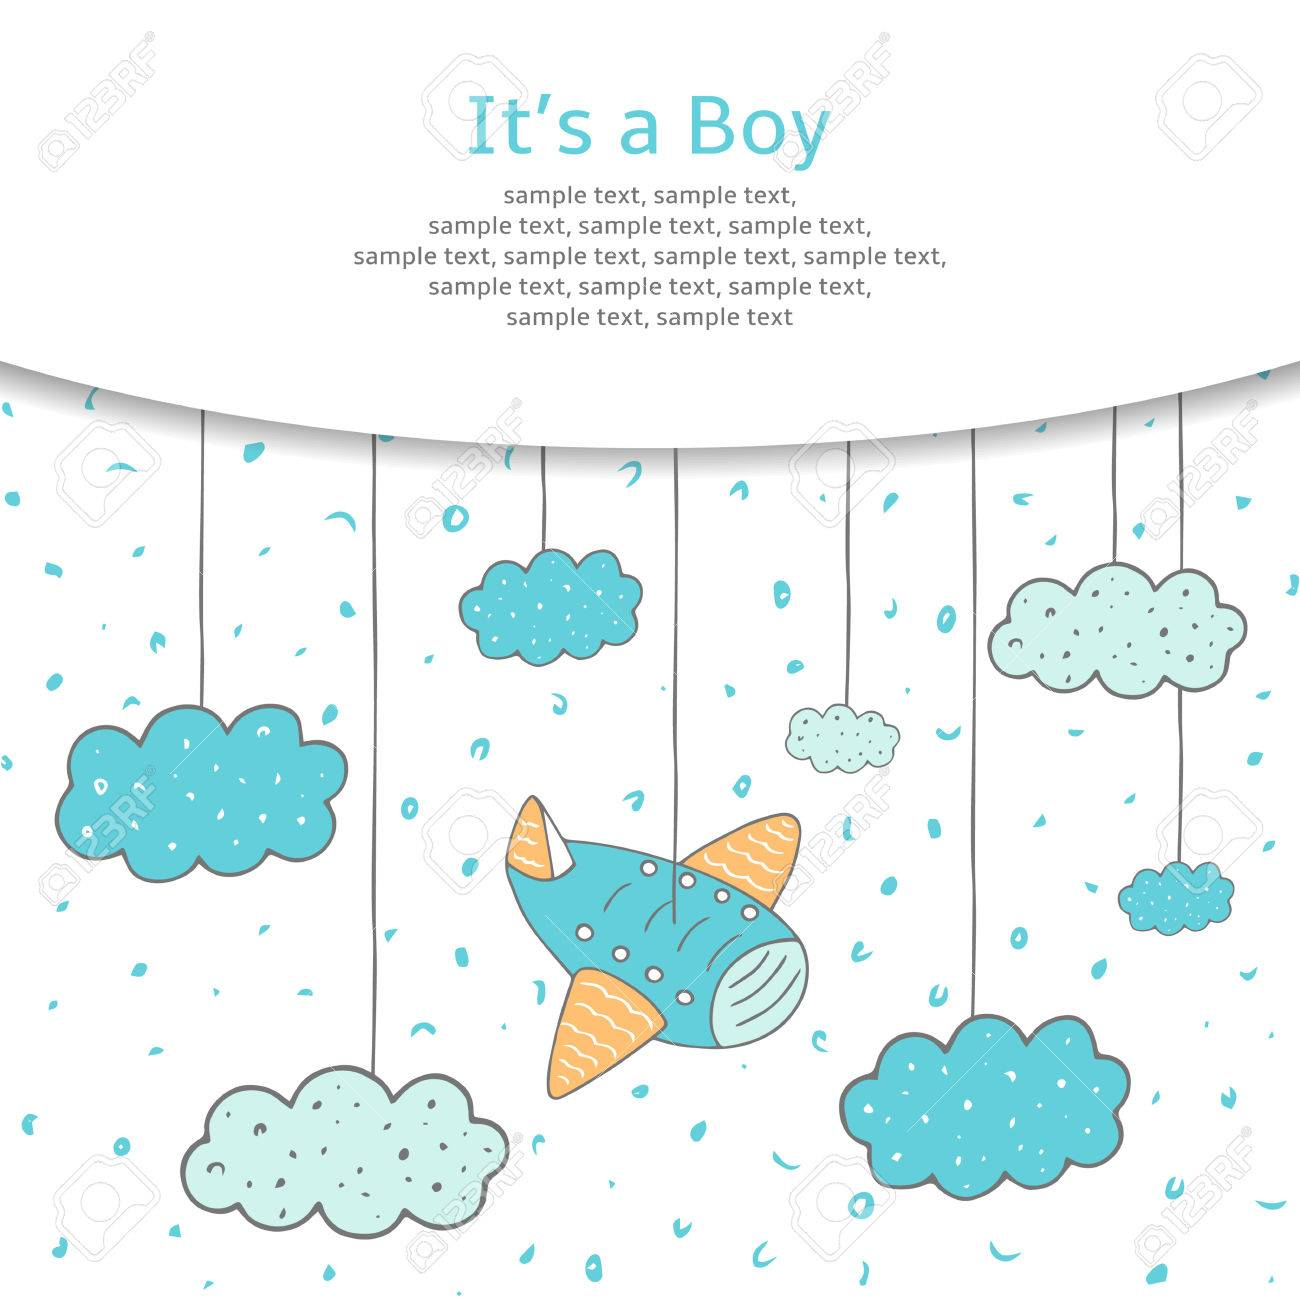 Cute hand drawn doodle baby shower card, cover, background with plane and clouds in the sky. It is a boy postcard. - 53900293